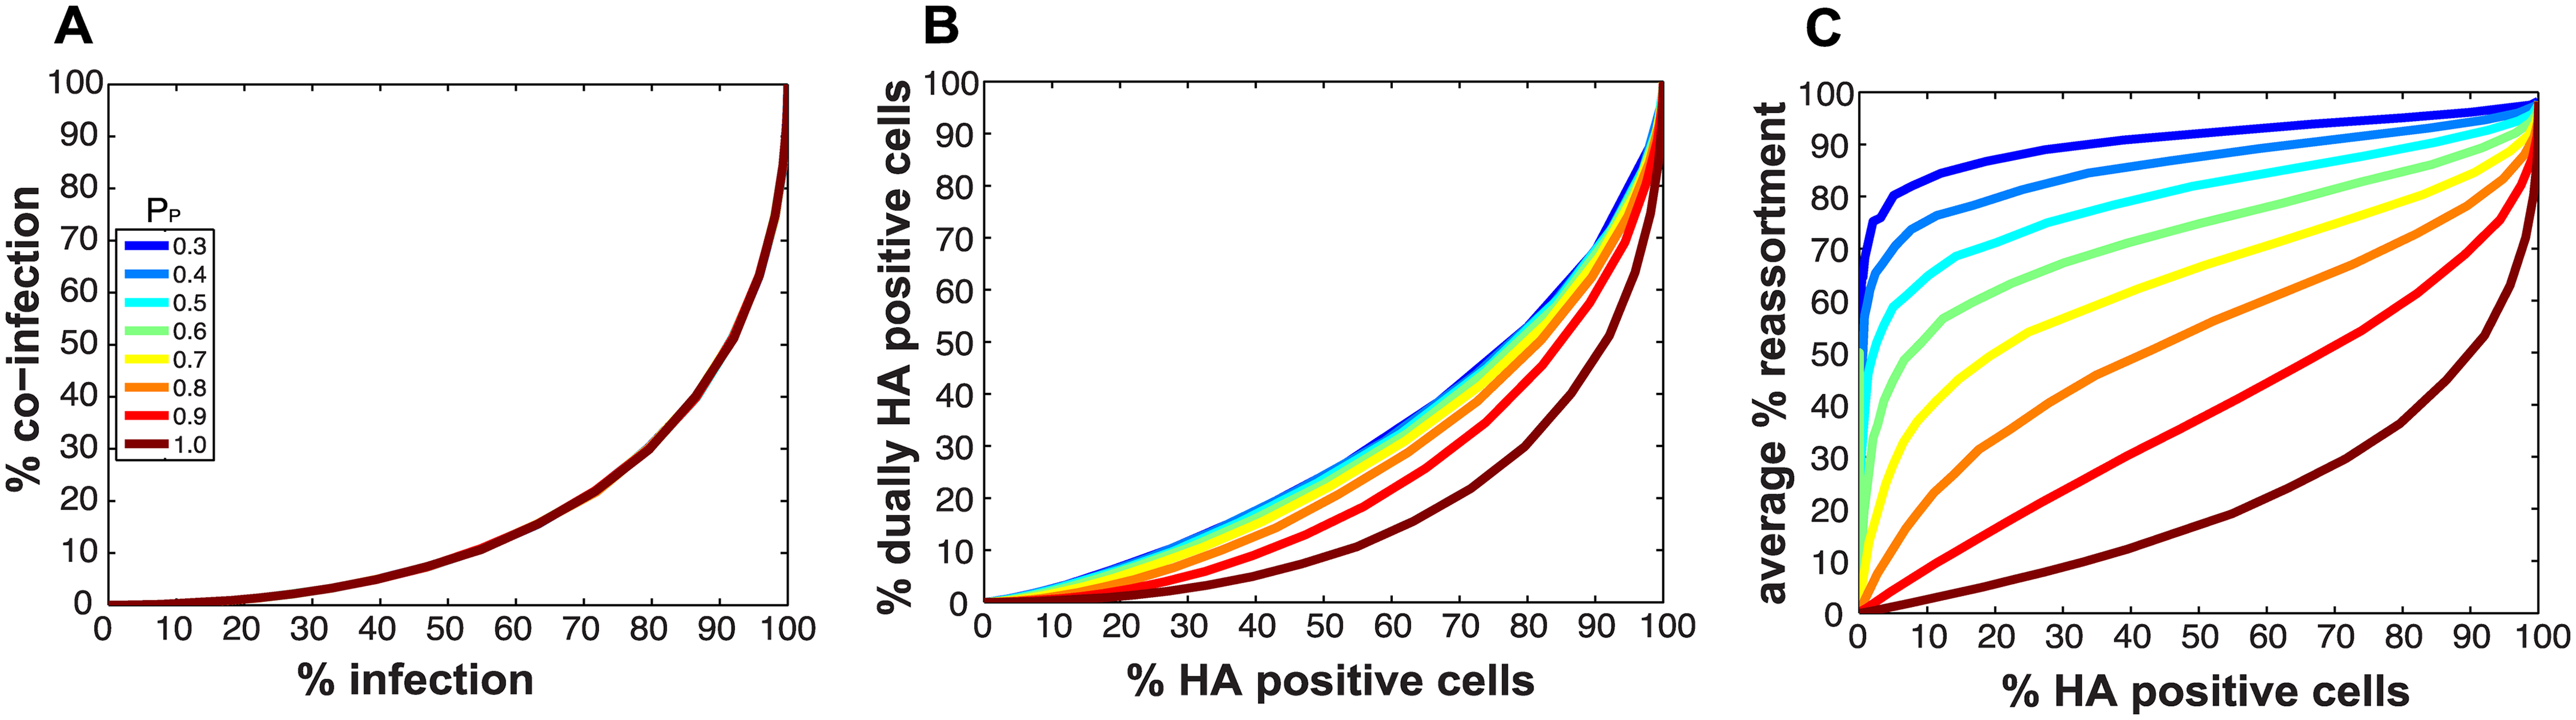 Impact on % infection, % co-infection, and % reassortment of introducing semi-infectious particles into the model.